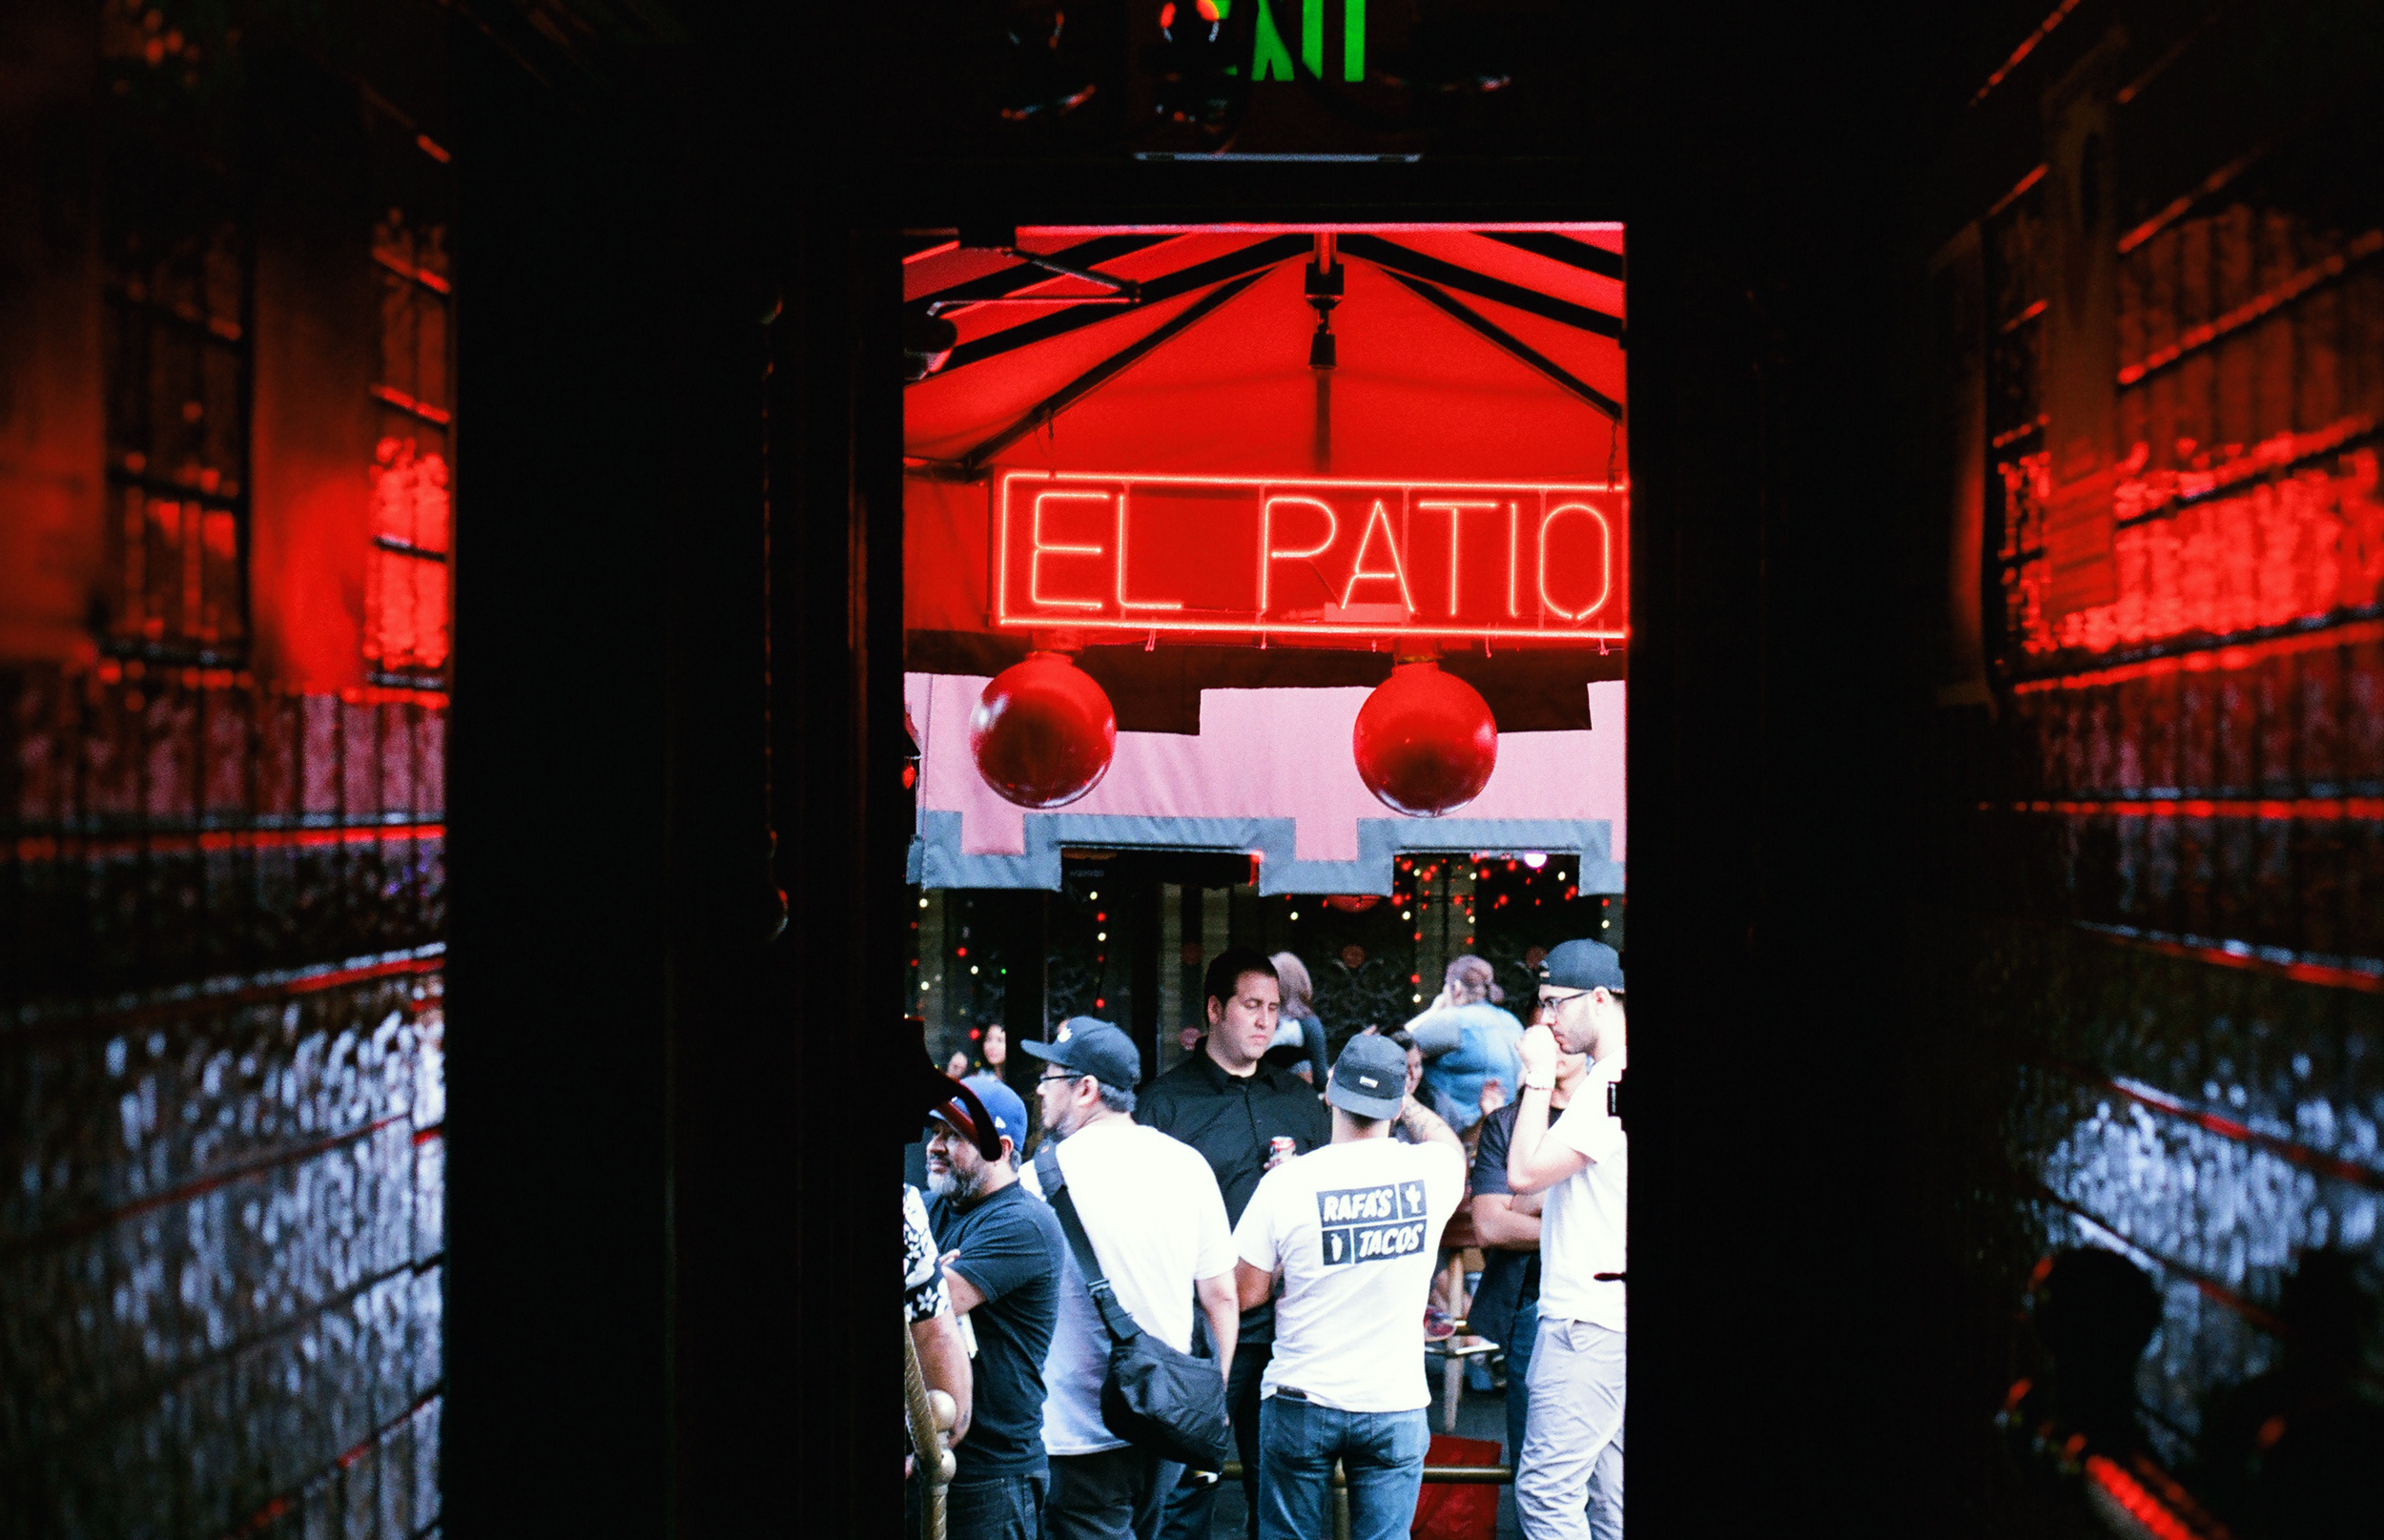 El Patio. Downtown LA. 35mm.